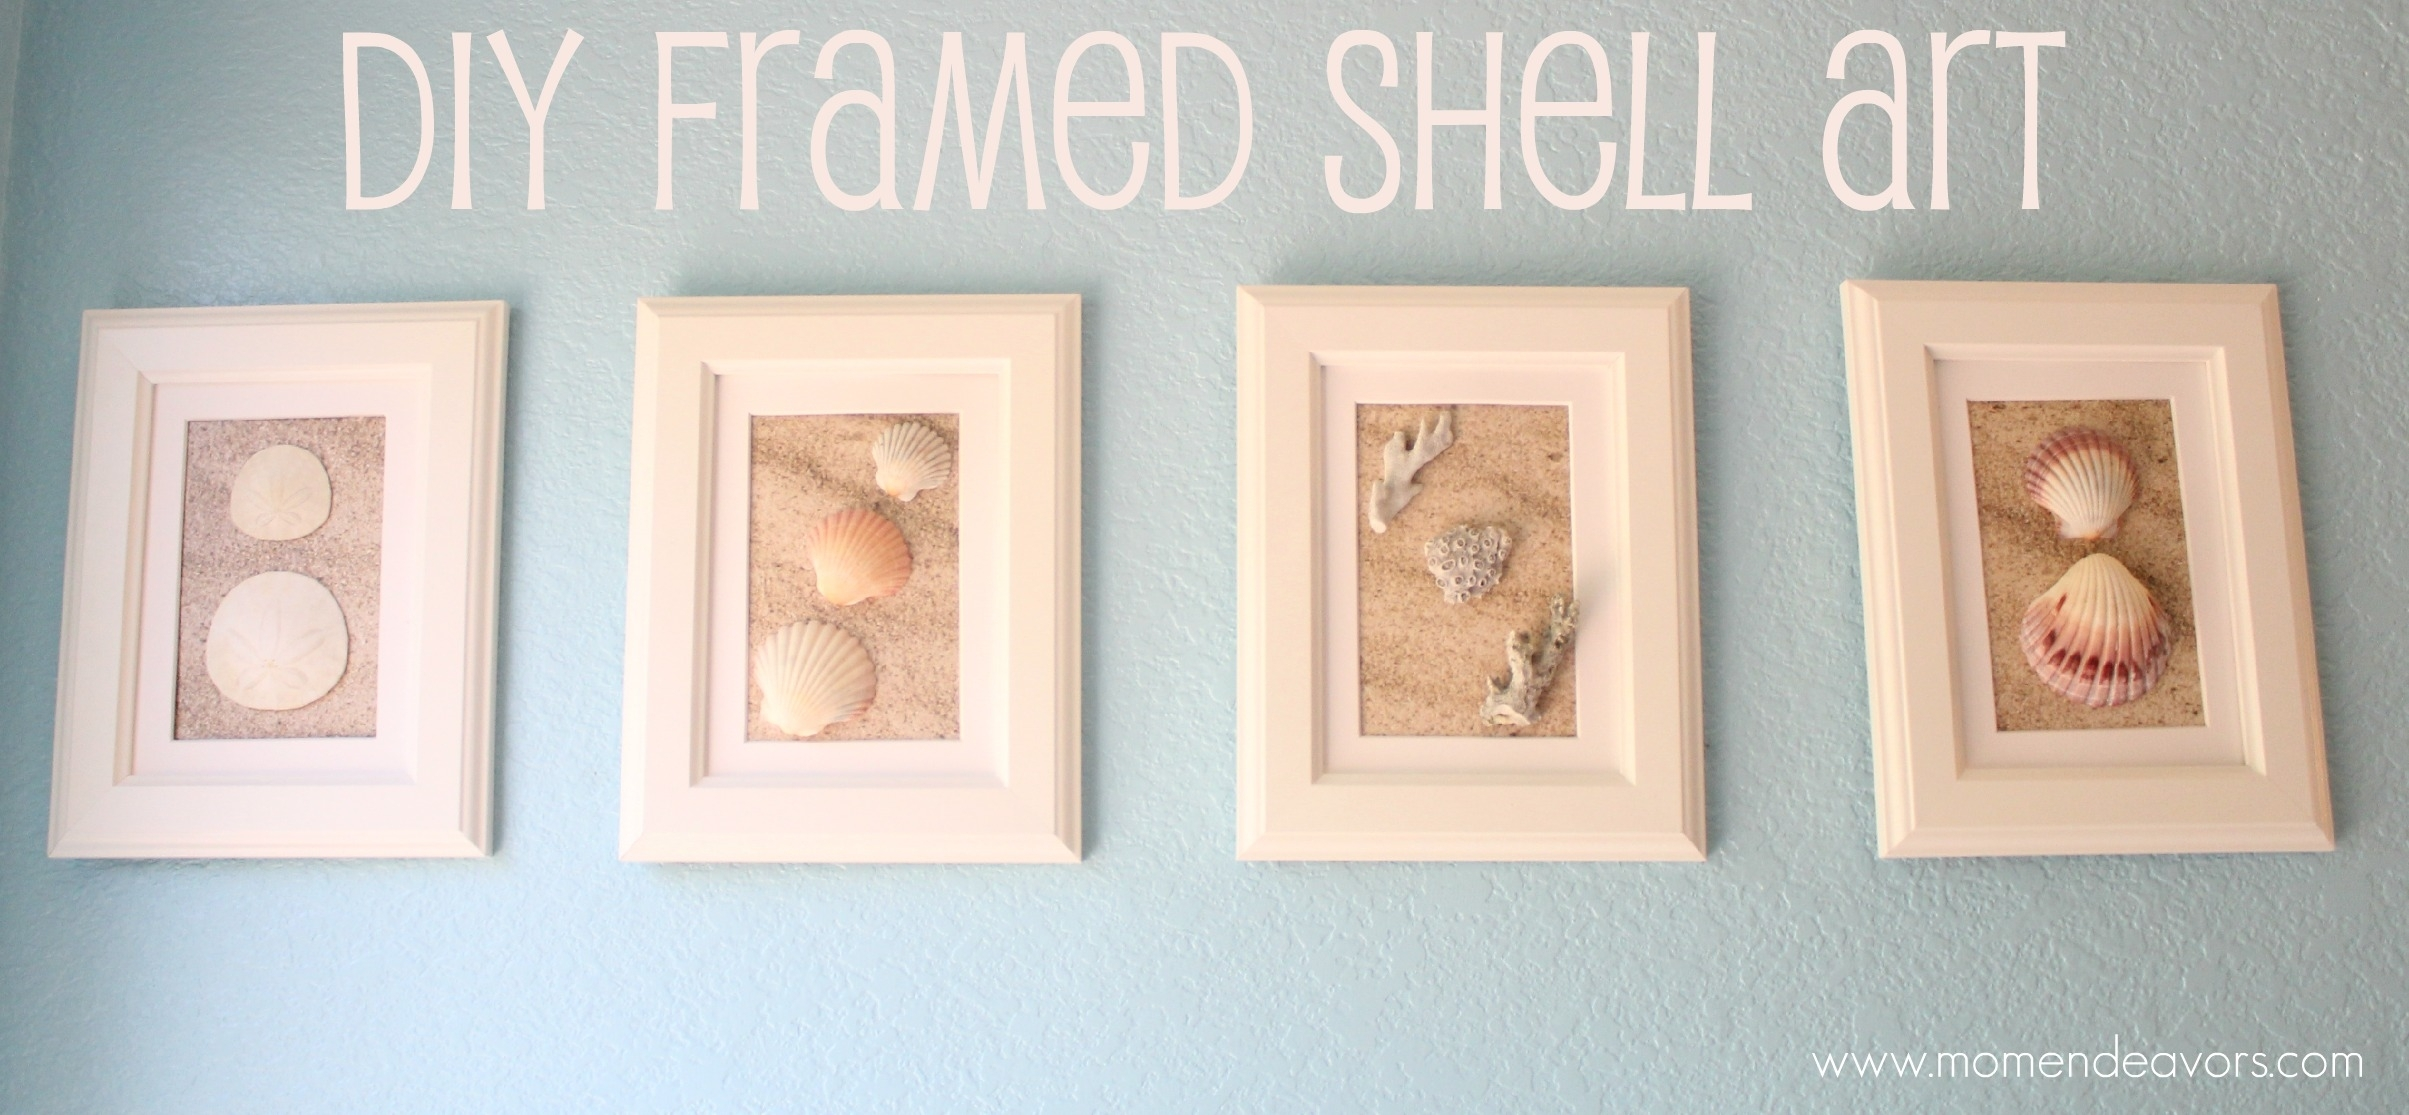 Diy Framed Shell Art Pertaining To Best And Newest Framed Art Prints For Bathroom (View 11 of 15)